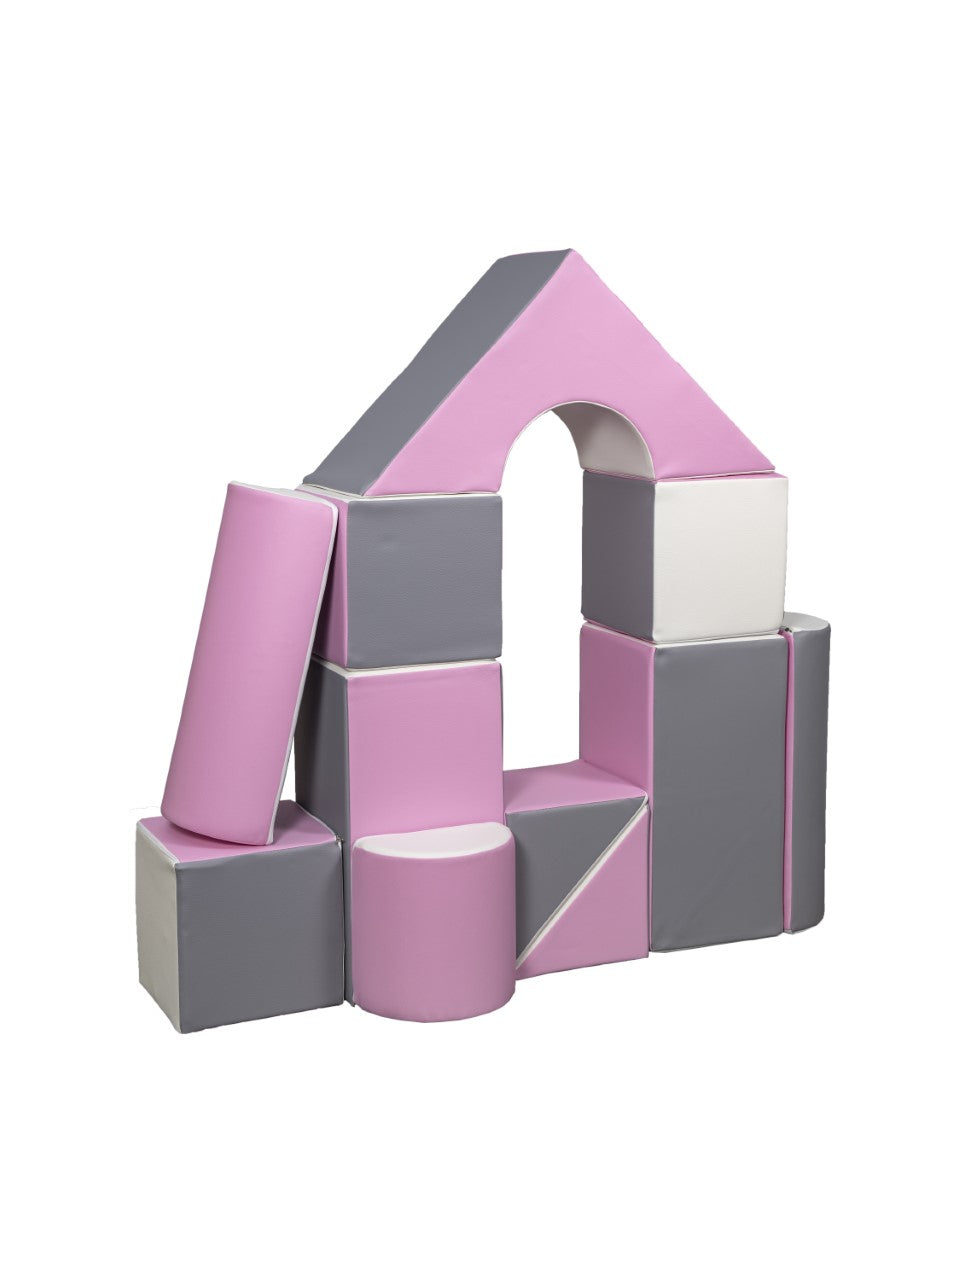 Soft Play Building Blocks - MADE IN EUROPE